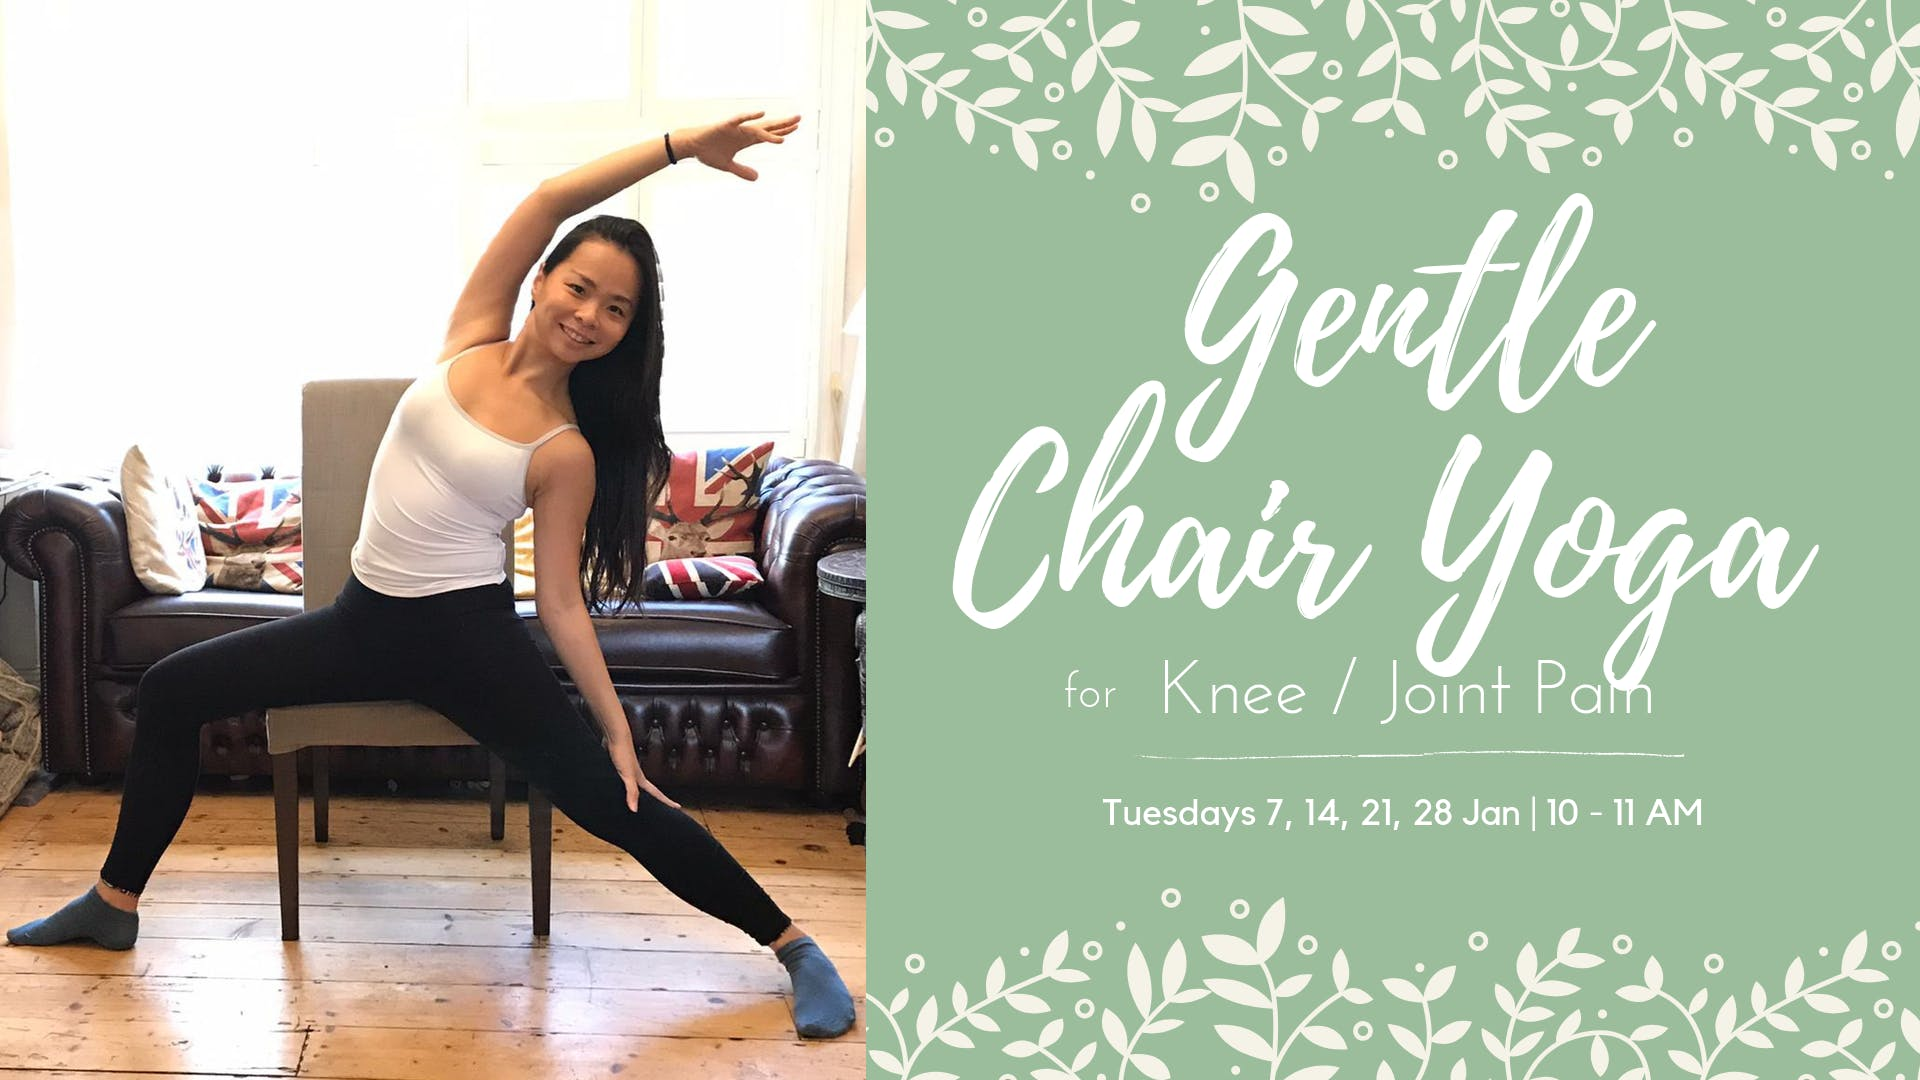 Gentle Chair Yoga for Knee / Joint Pain